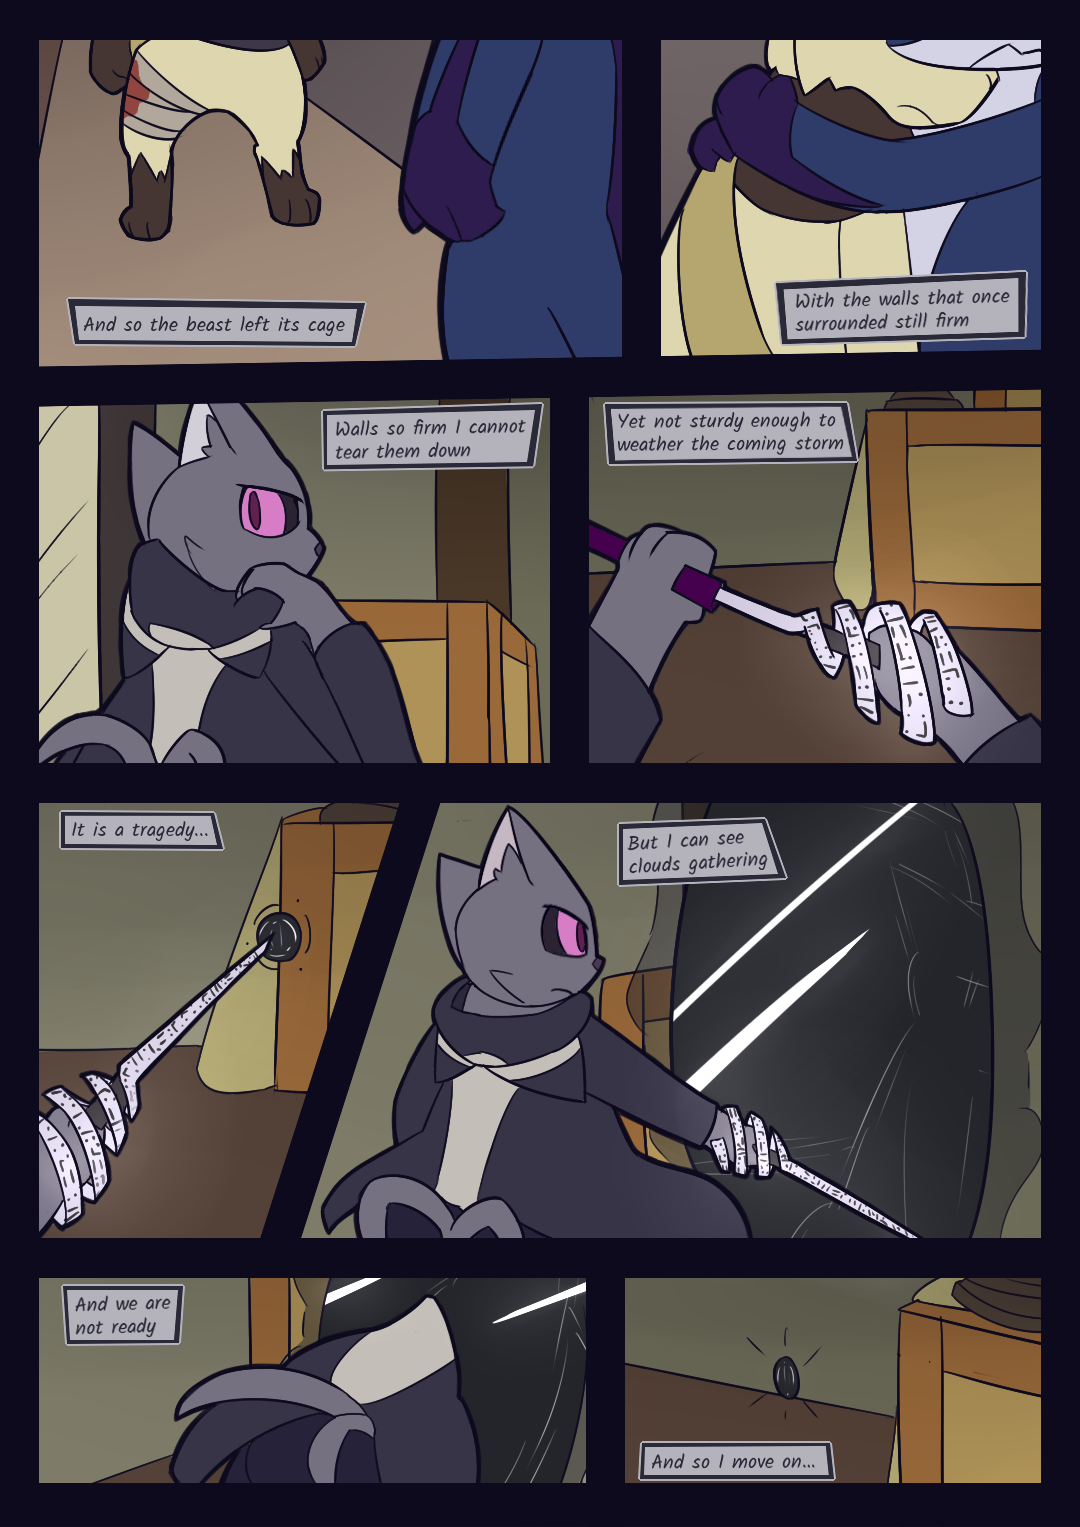 Nocturnal: THE CHAINS THAT BIND - Final Page